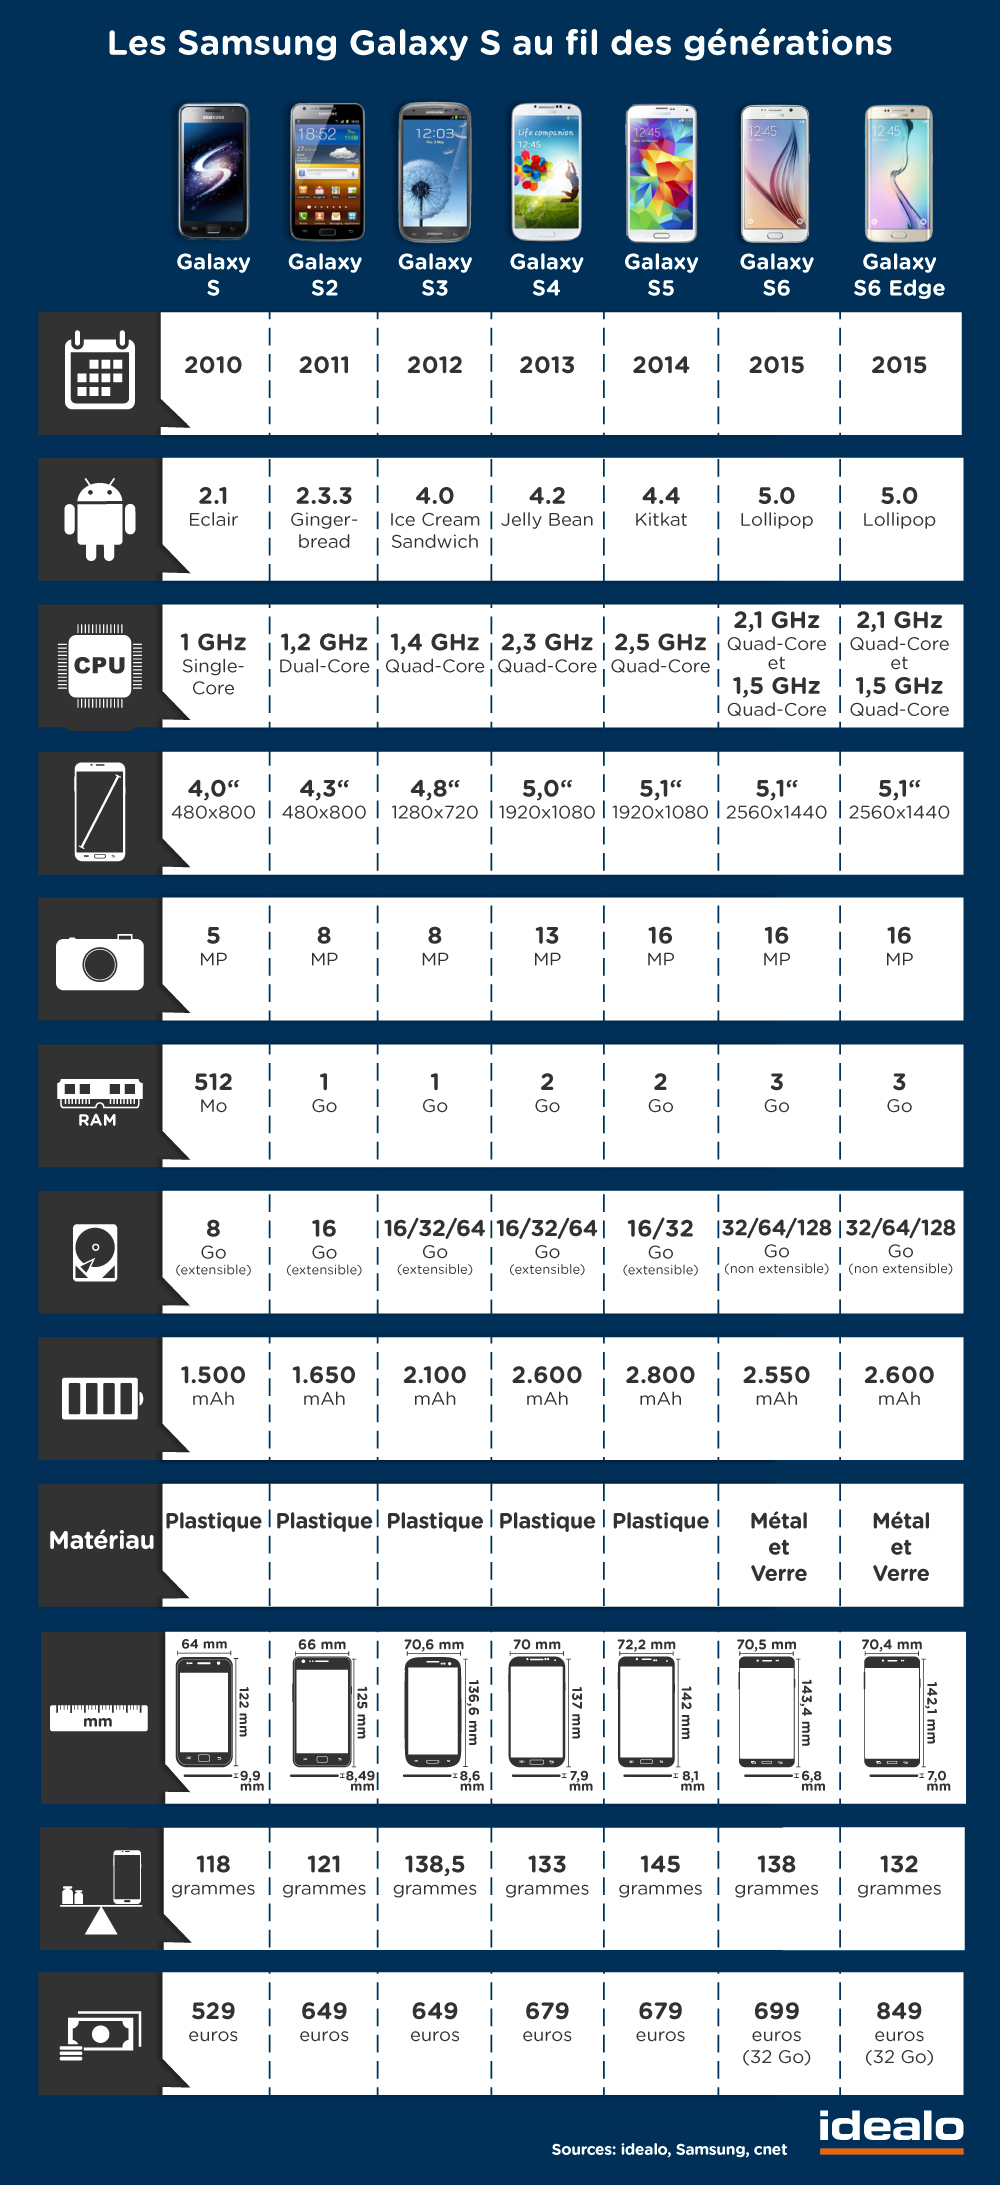 samsung galaxy s vs s2 vs s3 vs s4 vs s5 vs s6 vs s6 edge comparatif. Black Bedroom Furniture Sets. Home Design Ideas